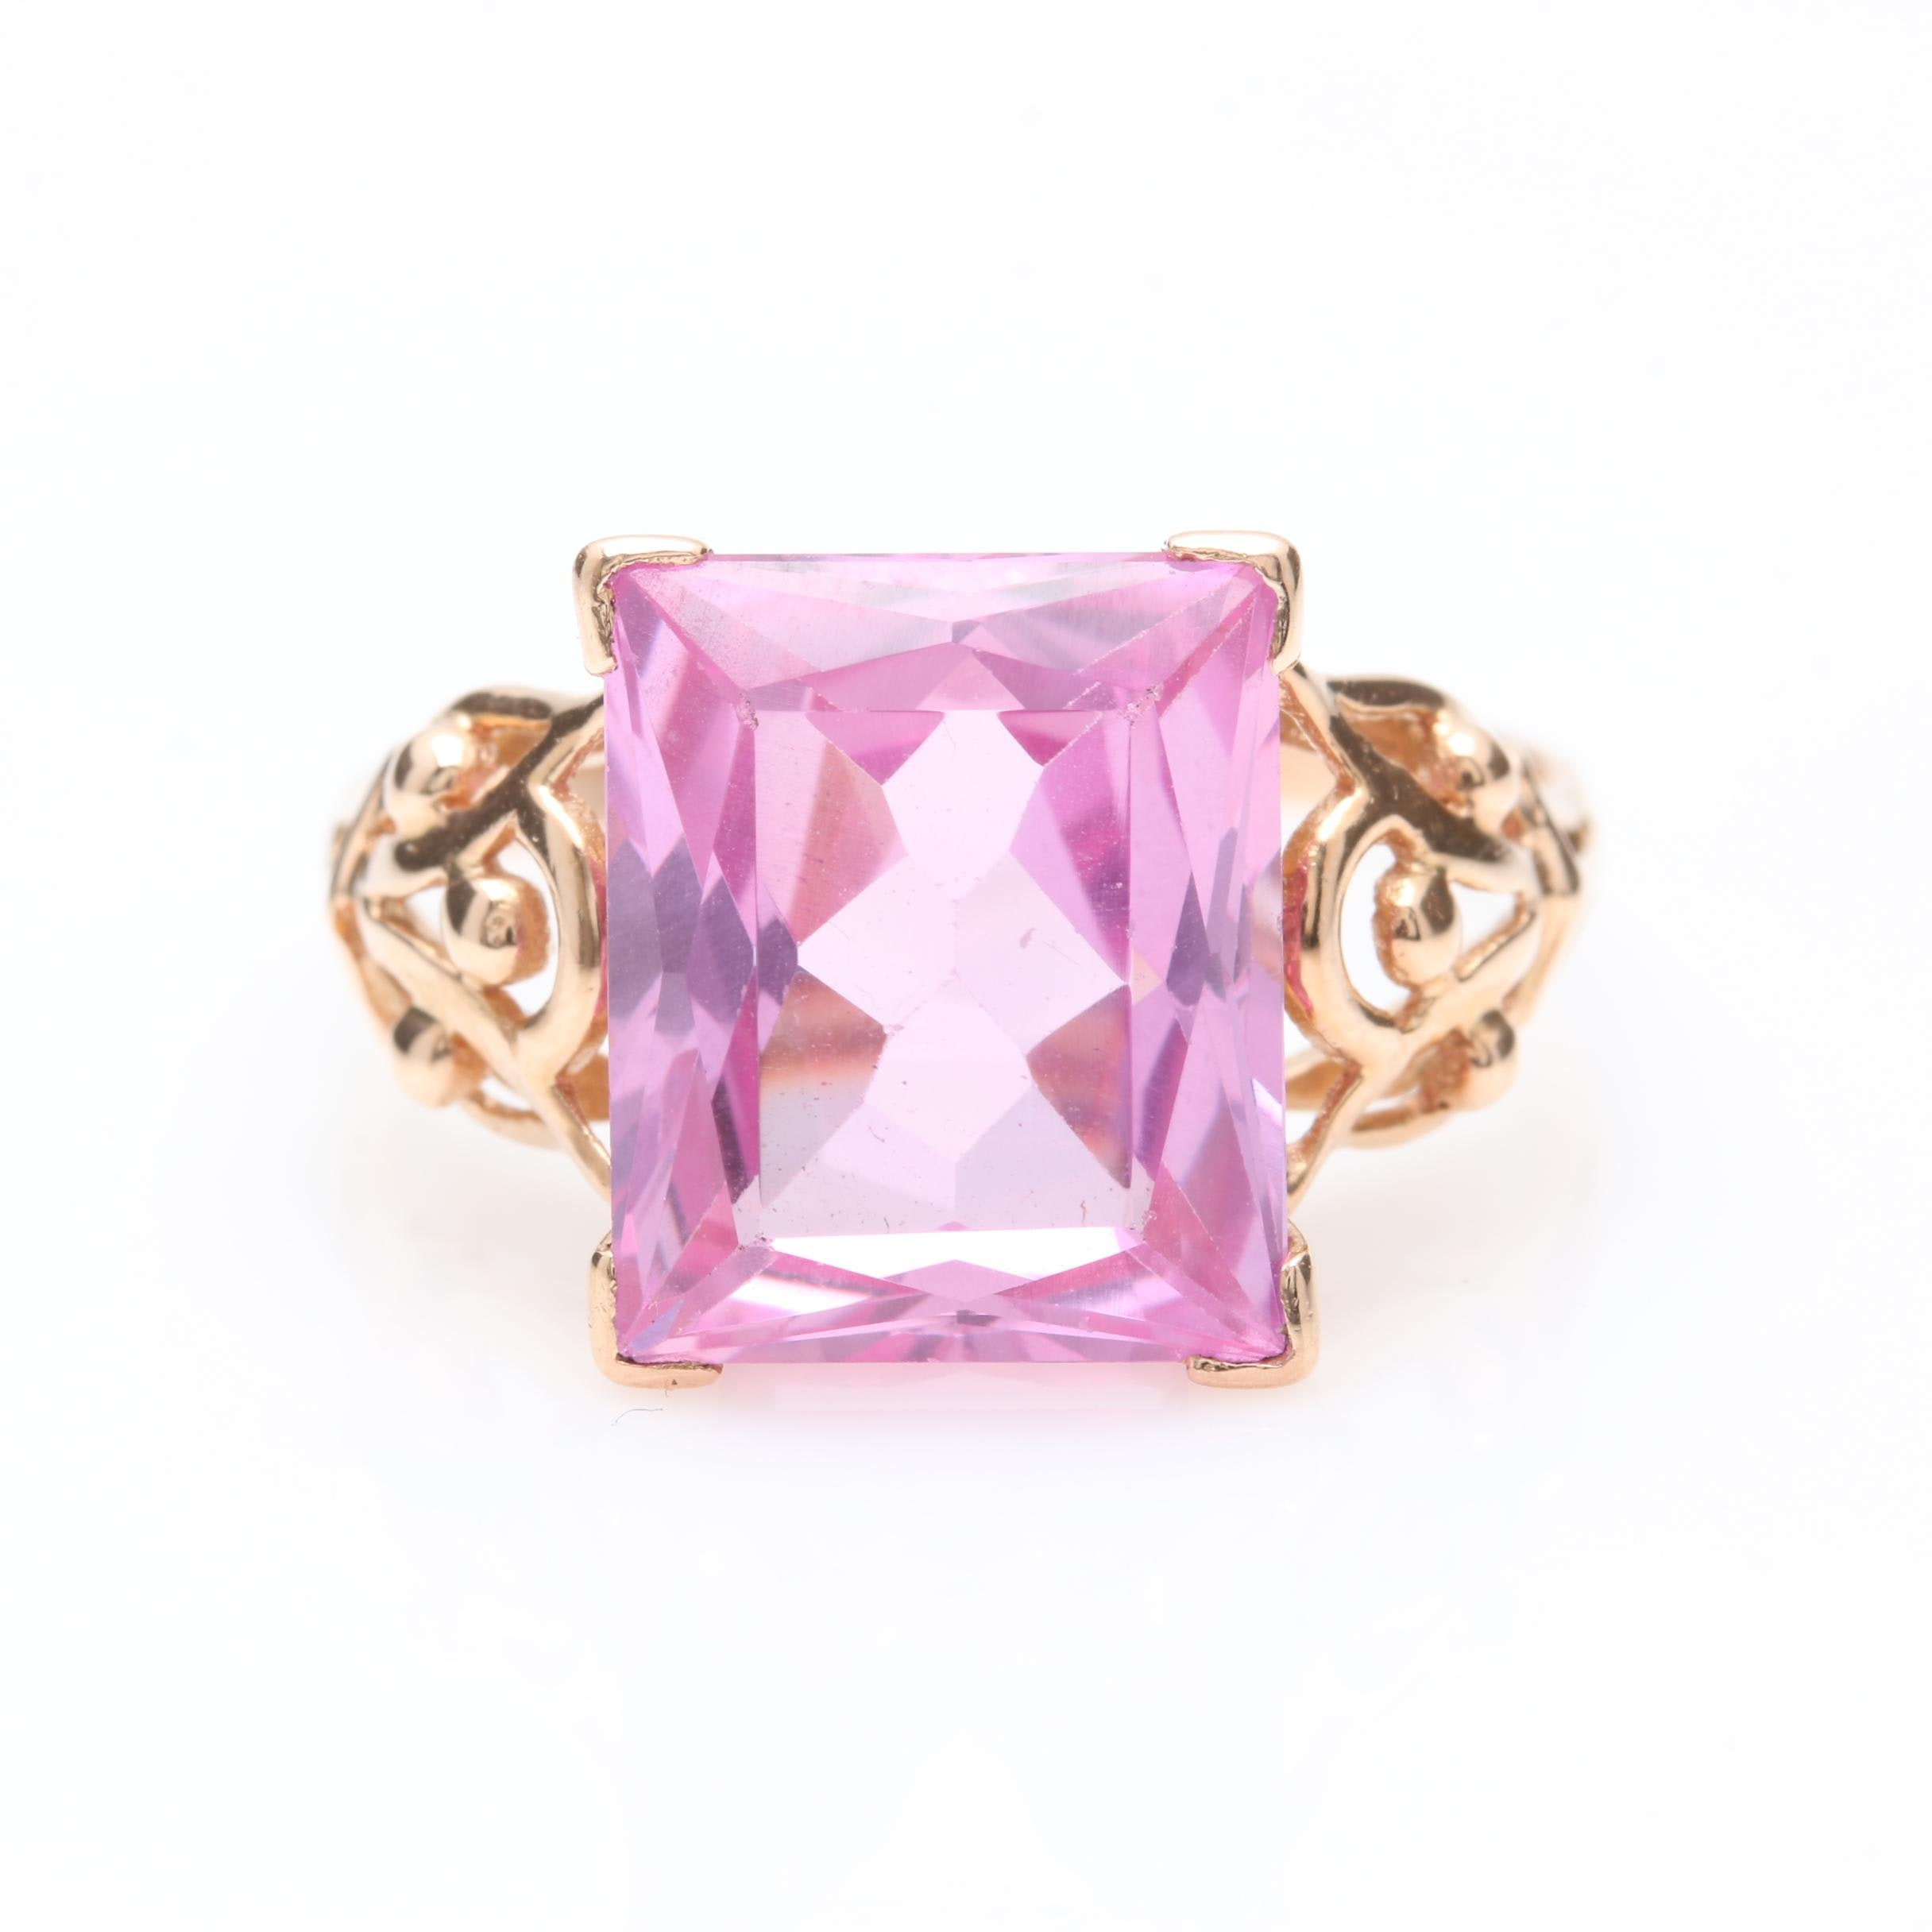 18K Yellow Gold Synthetic Pink Sapphire Ring